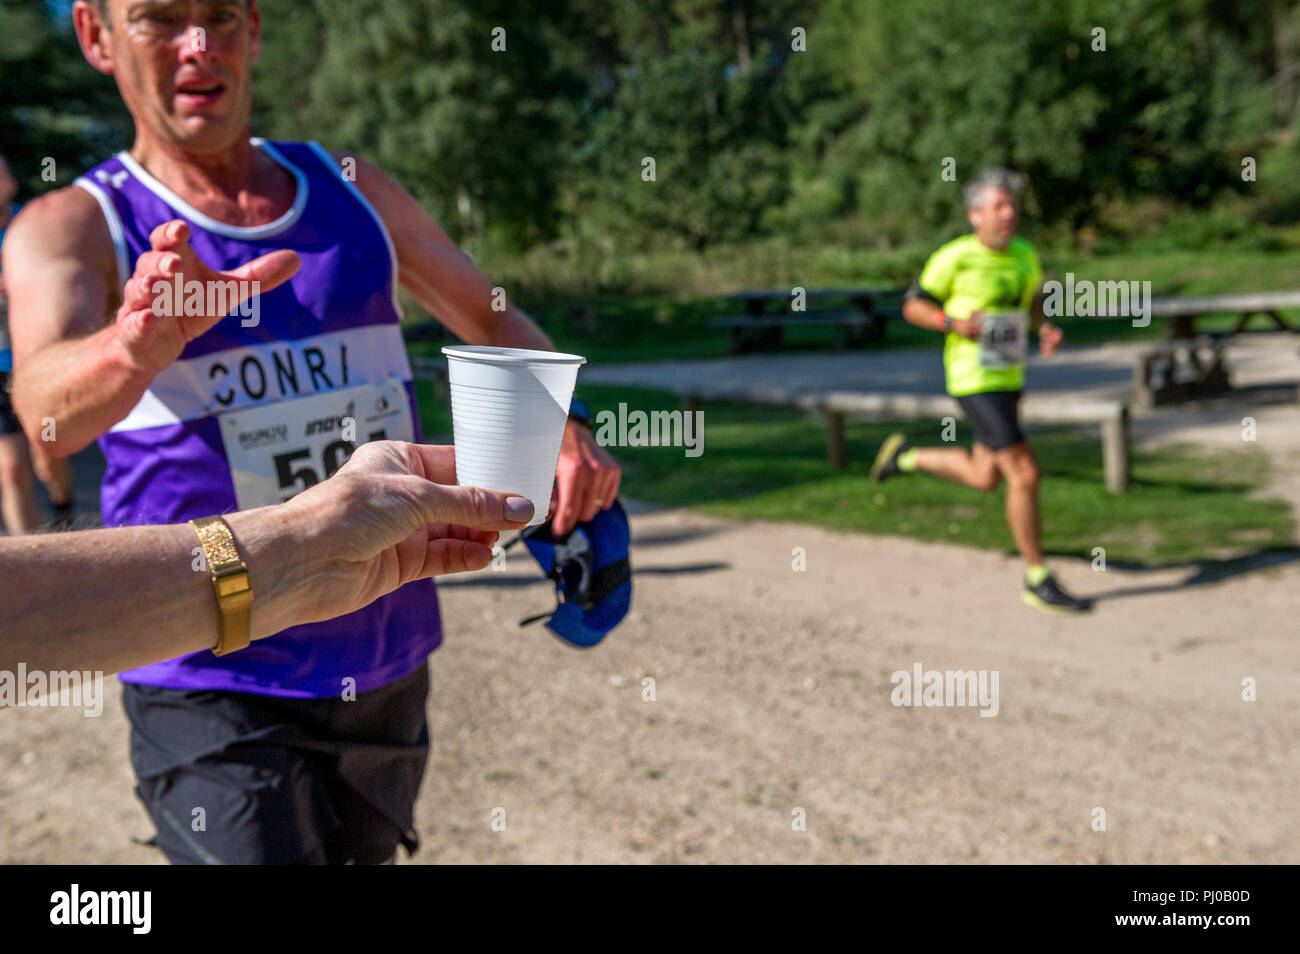 Runners grasping a plastic cup of water during 10k run. - Stock Image